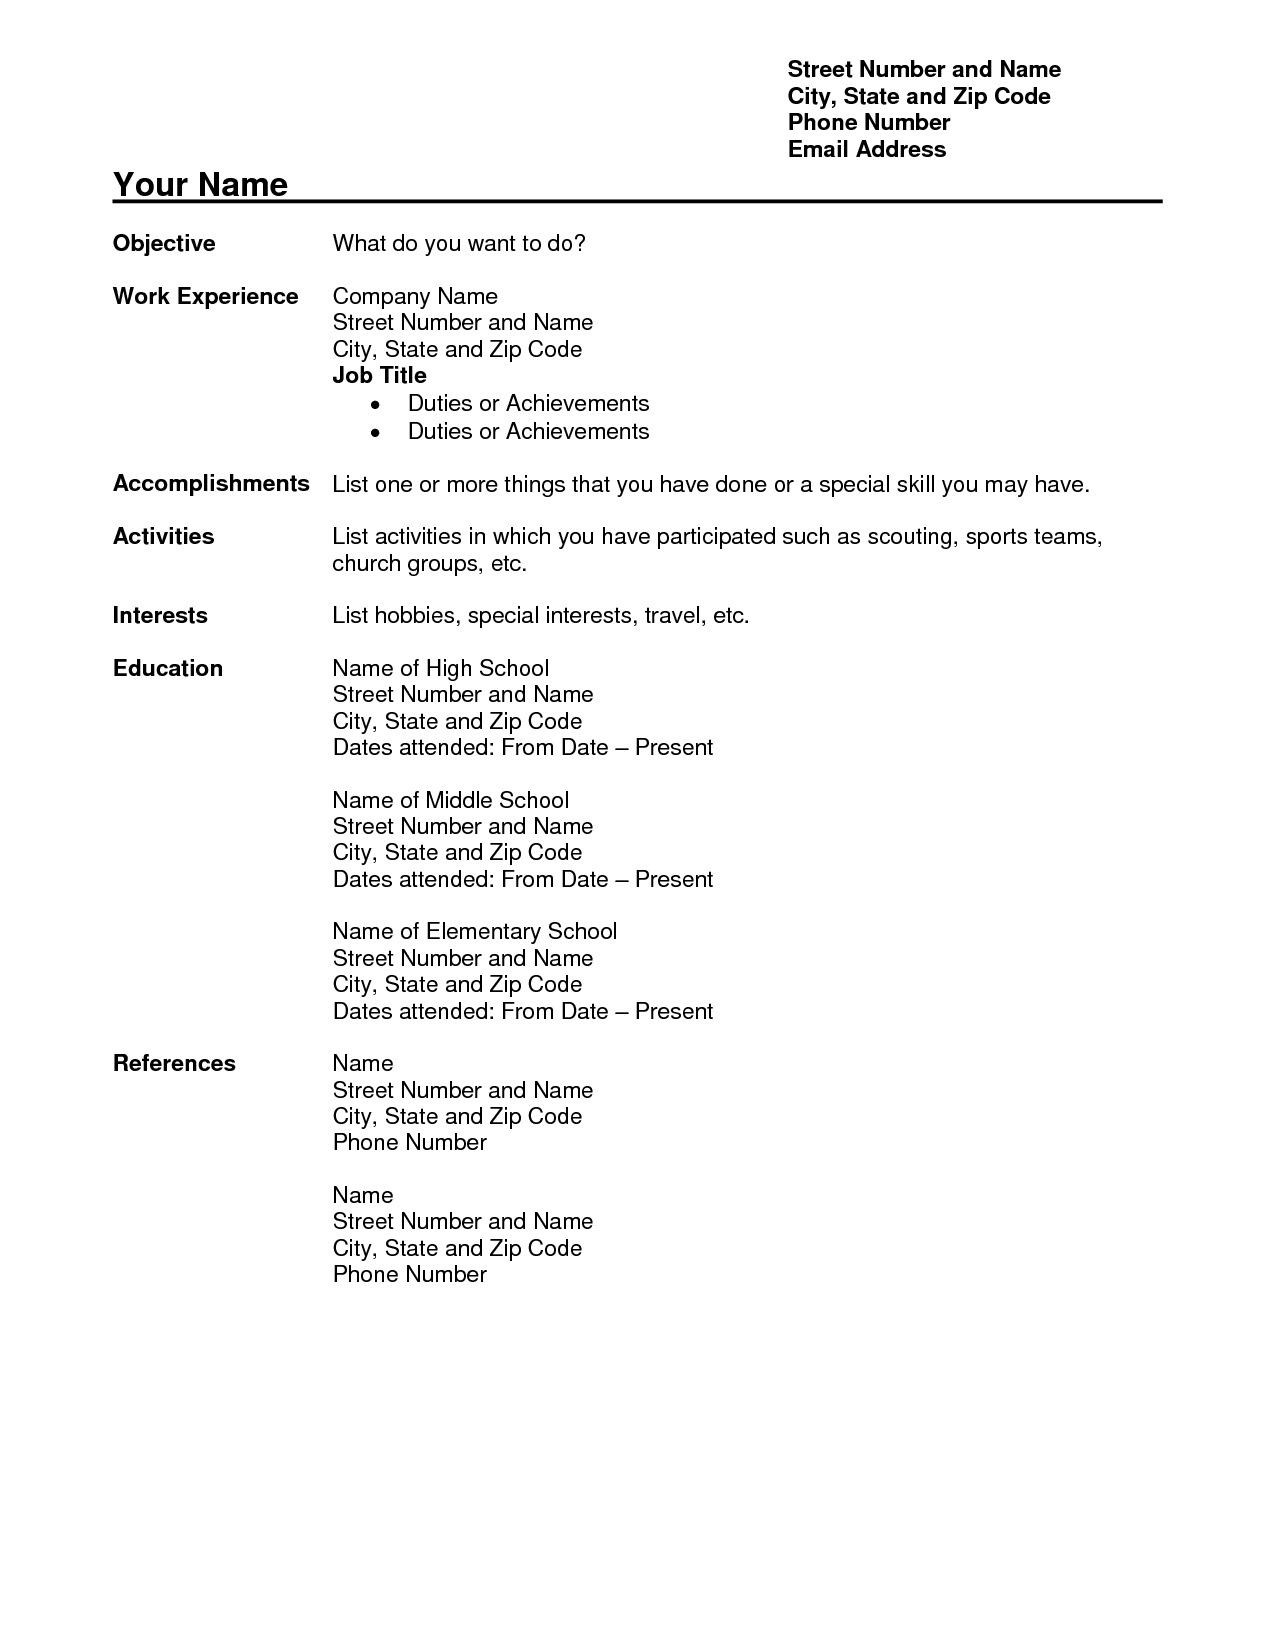 resume sample in pdf file